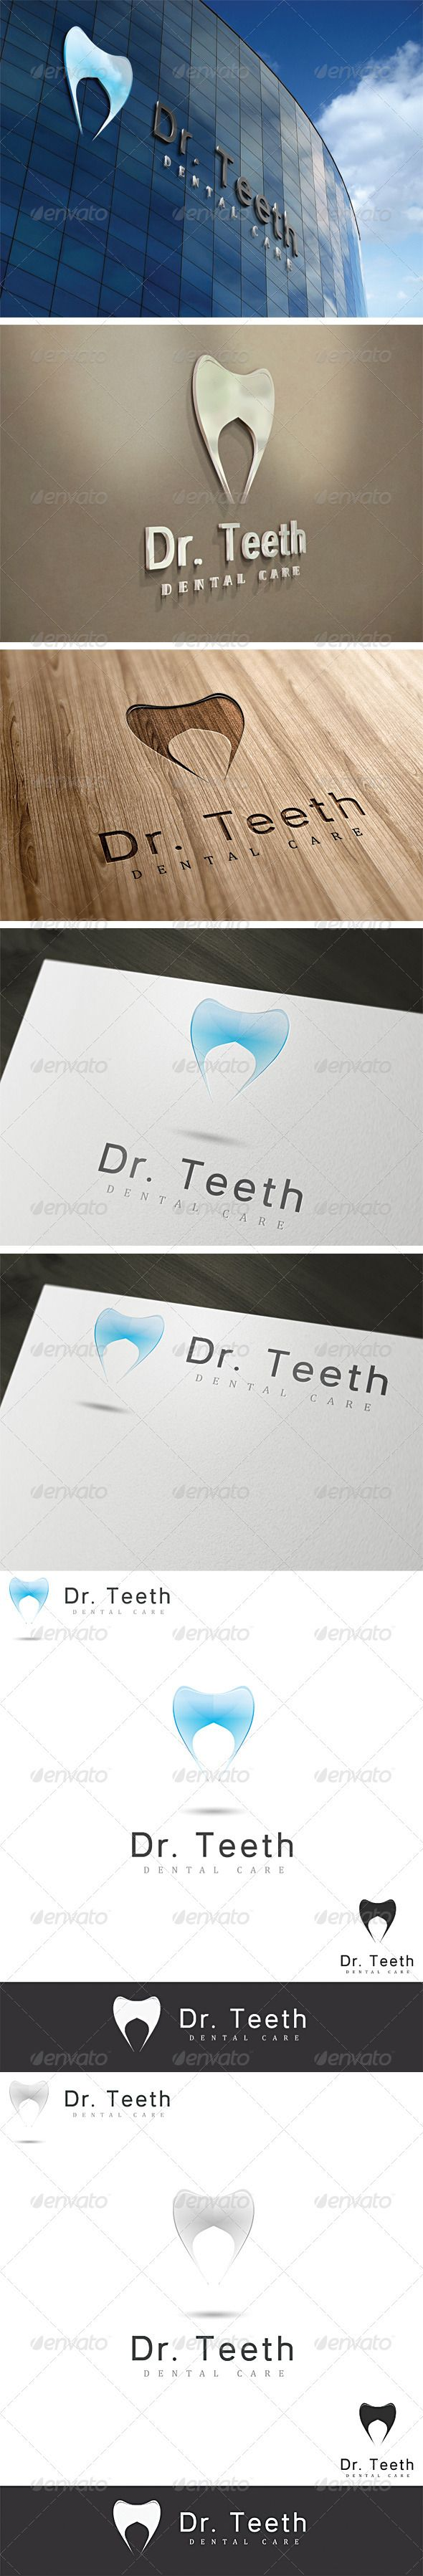 Dr. Teeth Dental Logo Template — Vector EPS #mouth #medicine • Available here → https://graphicriver.net/item/dr-teeth-dental-logo-template/2606351?ref=pxcr